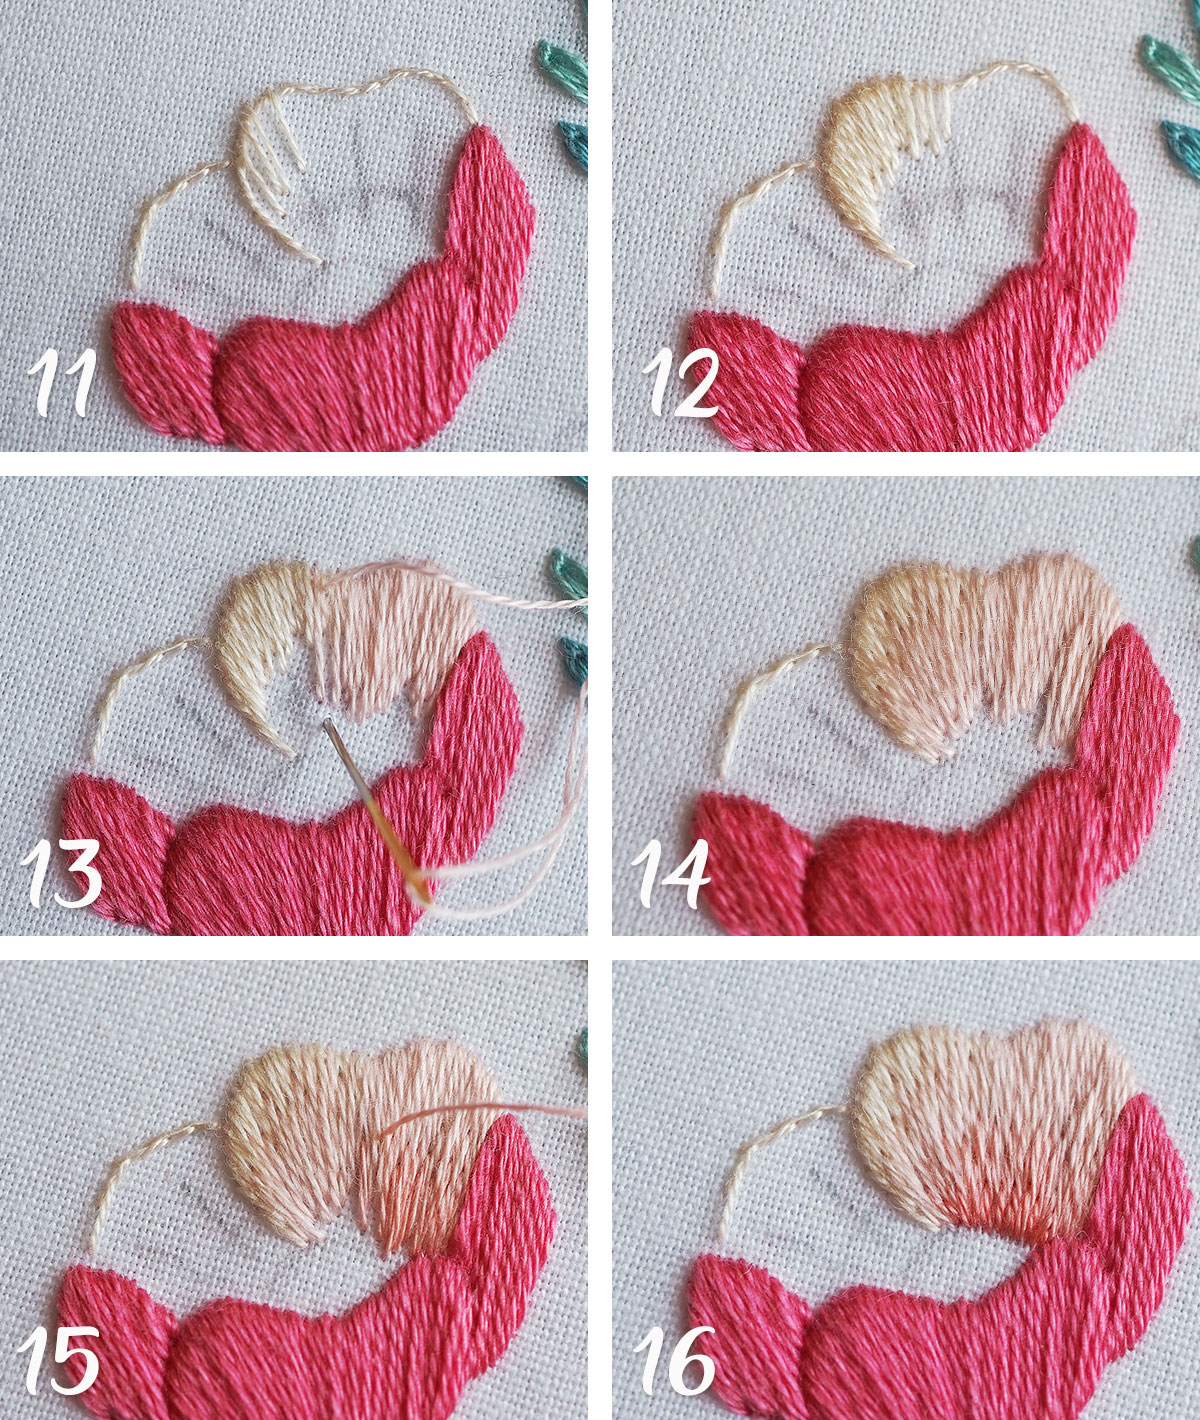 embroidery step by step